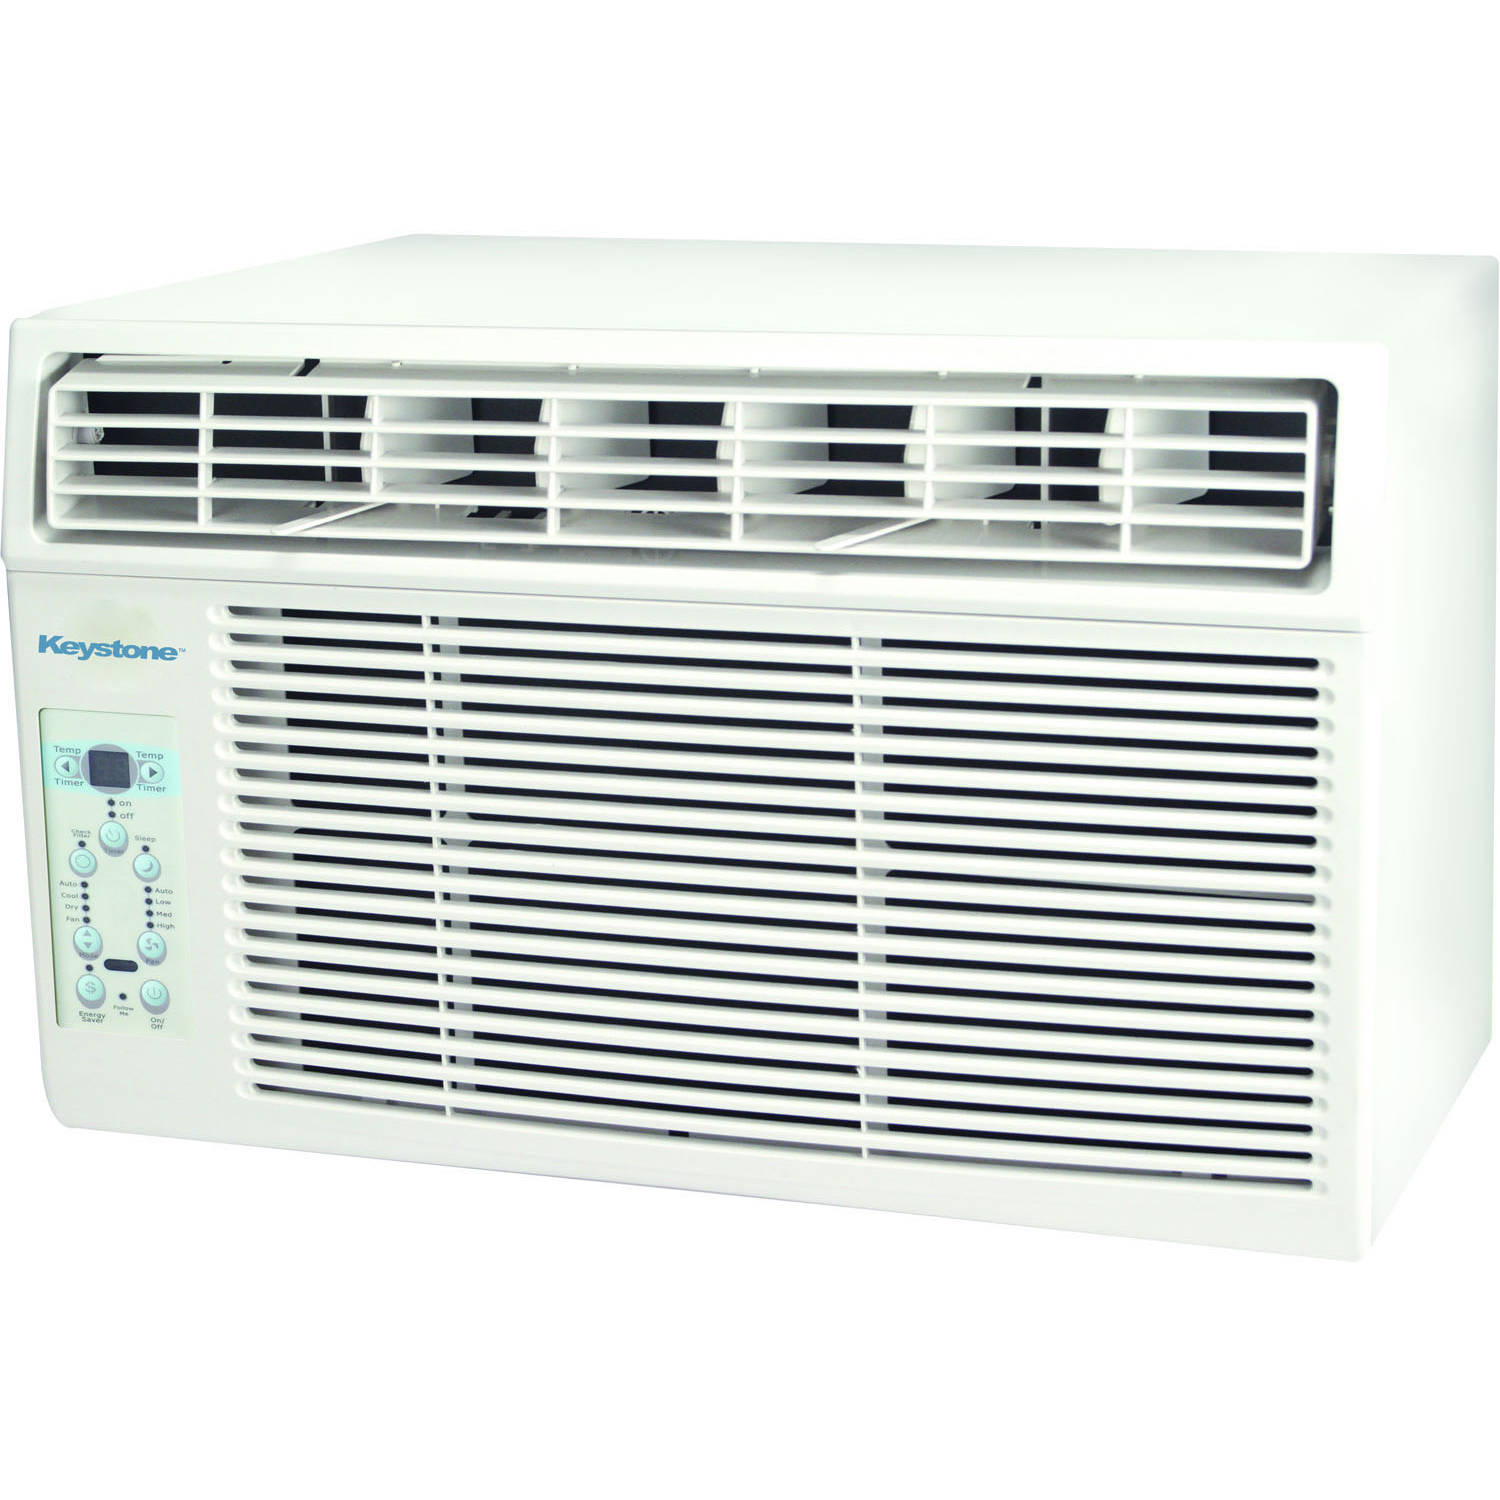 "Keystone KSTAW10B Energy Efficient 10,000-BTU 115V Window-Mounted Air Conditioner with ""Follow Me"" LCD Remote Control"